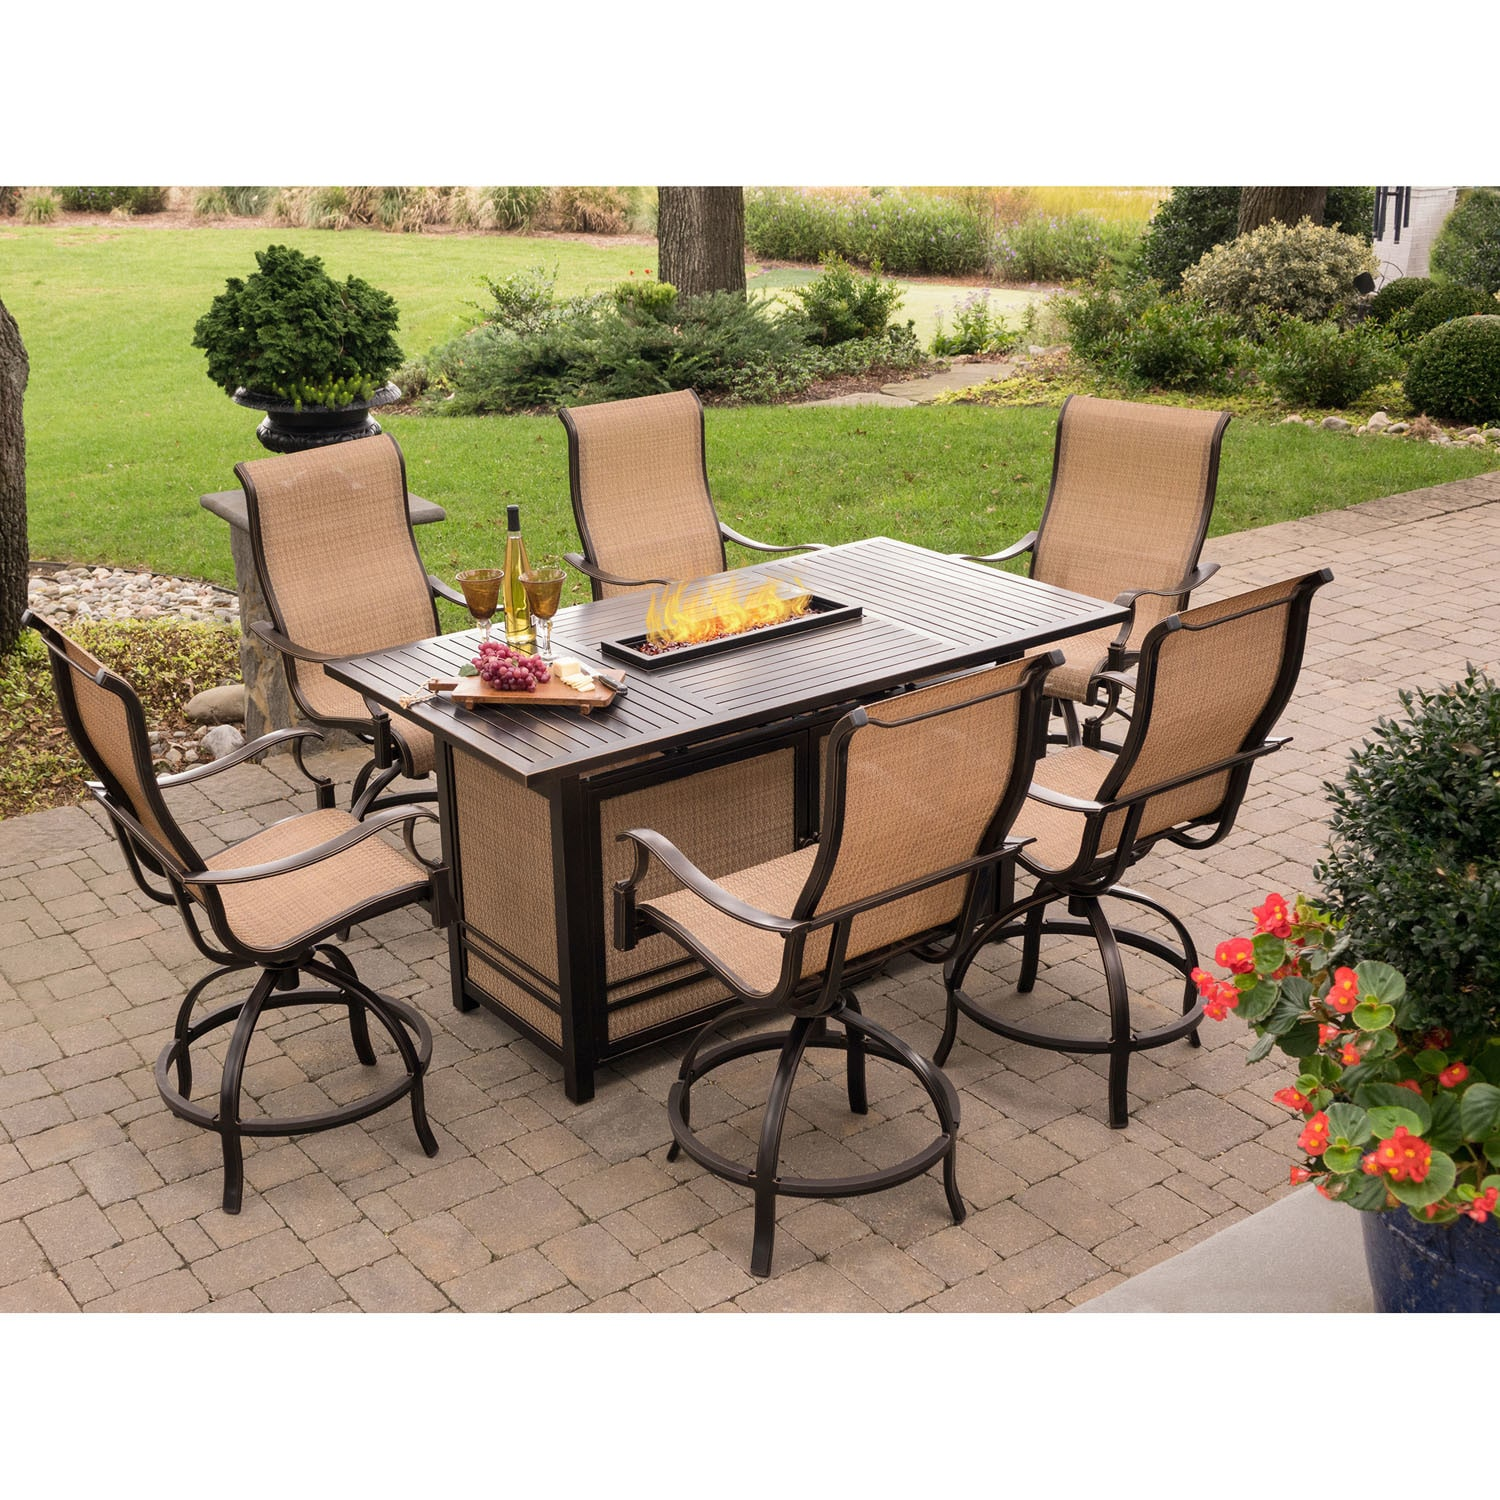 Monaco 7-Piece High-Dining Set with 6 Swivel Rockers and a 30,000 BTU Fire Pit Table (Tan)